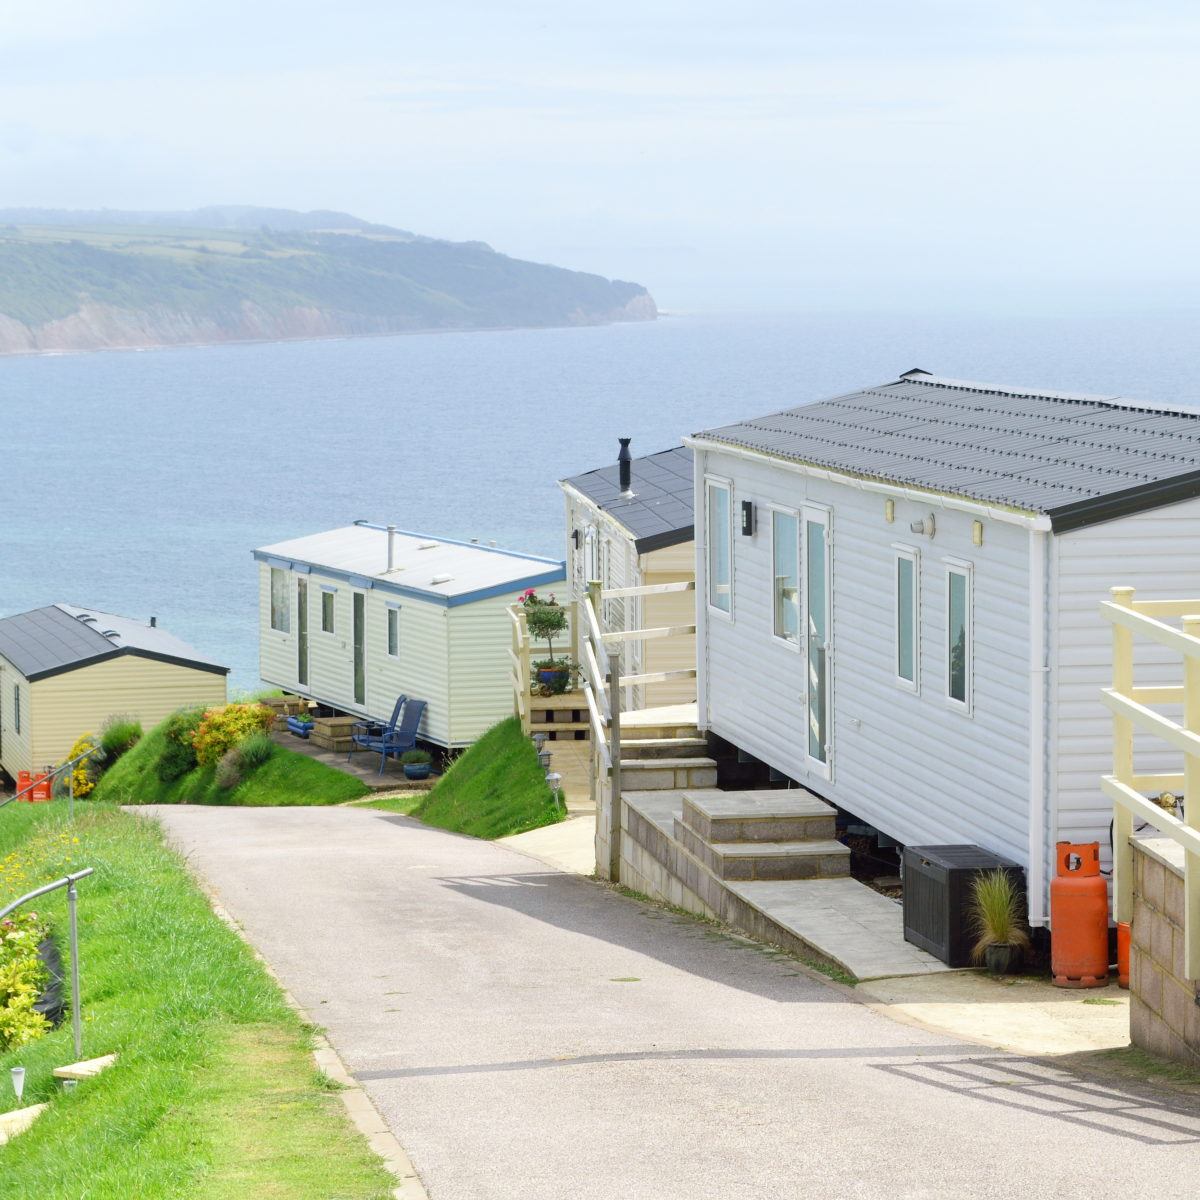 Caravan Park near village Beer in Devon, England